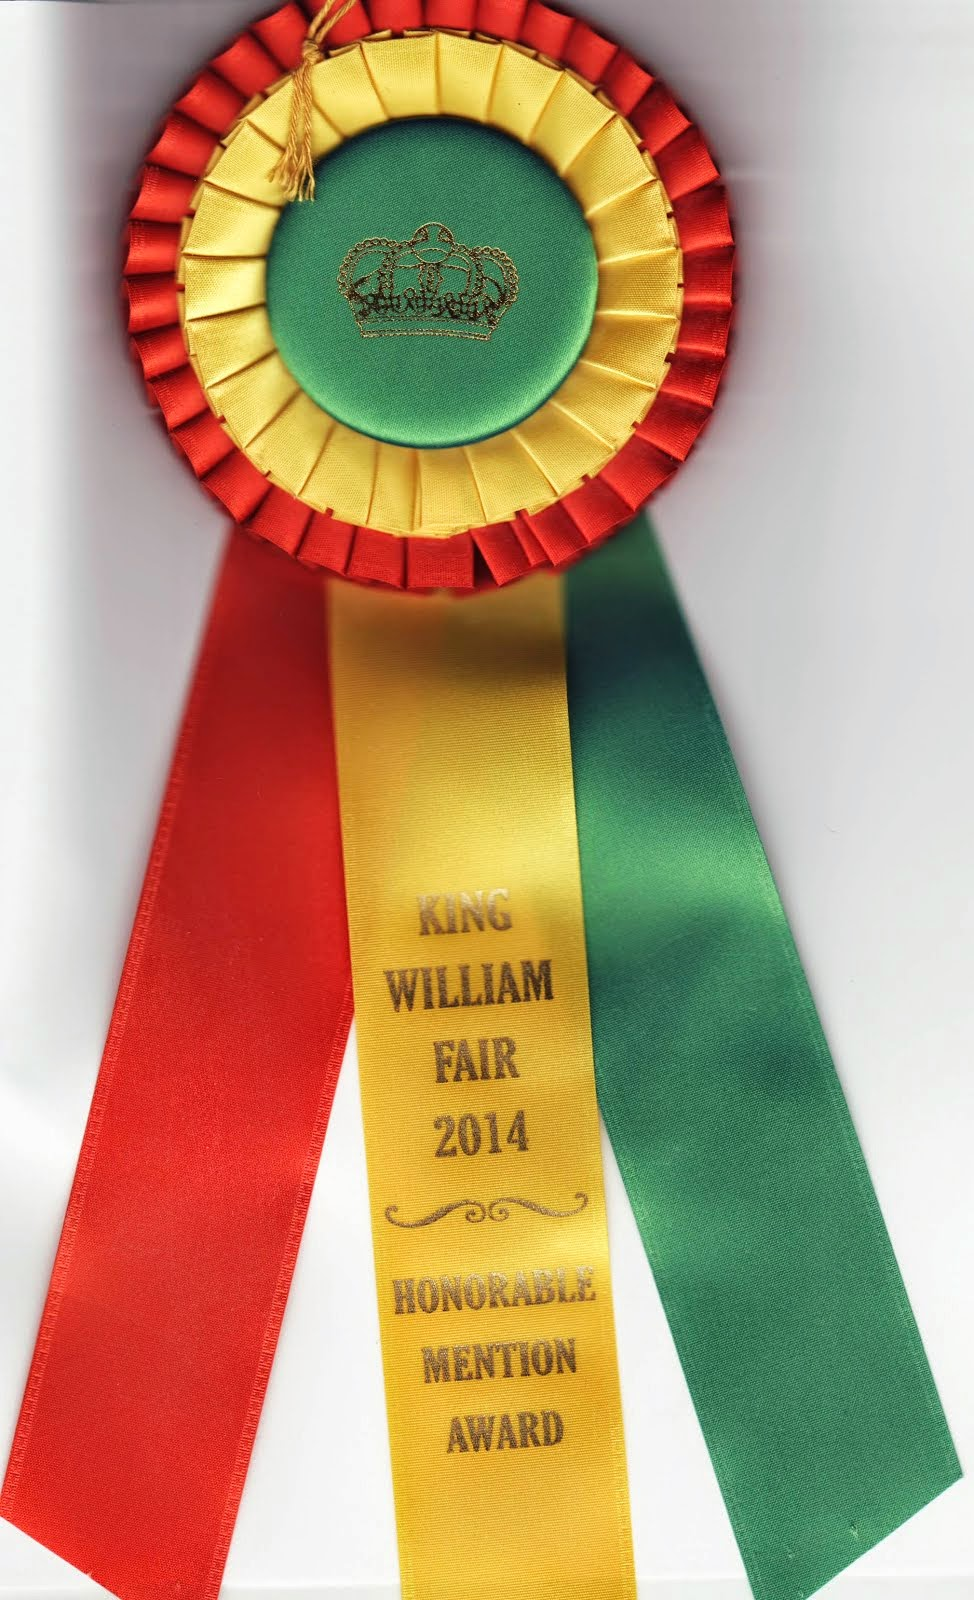 King Williams Fair 2014